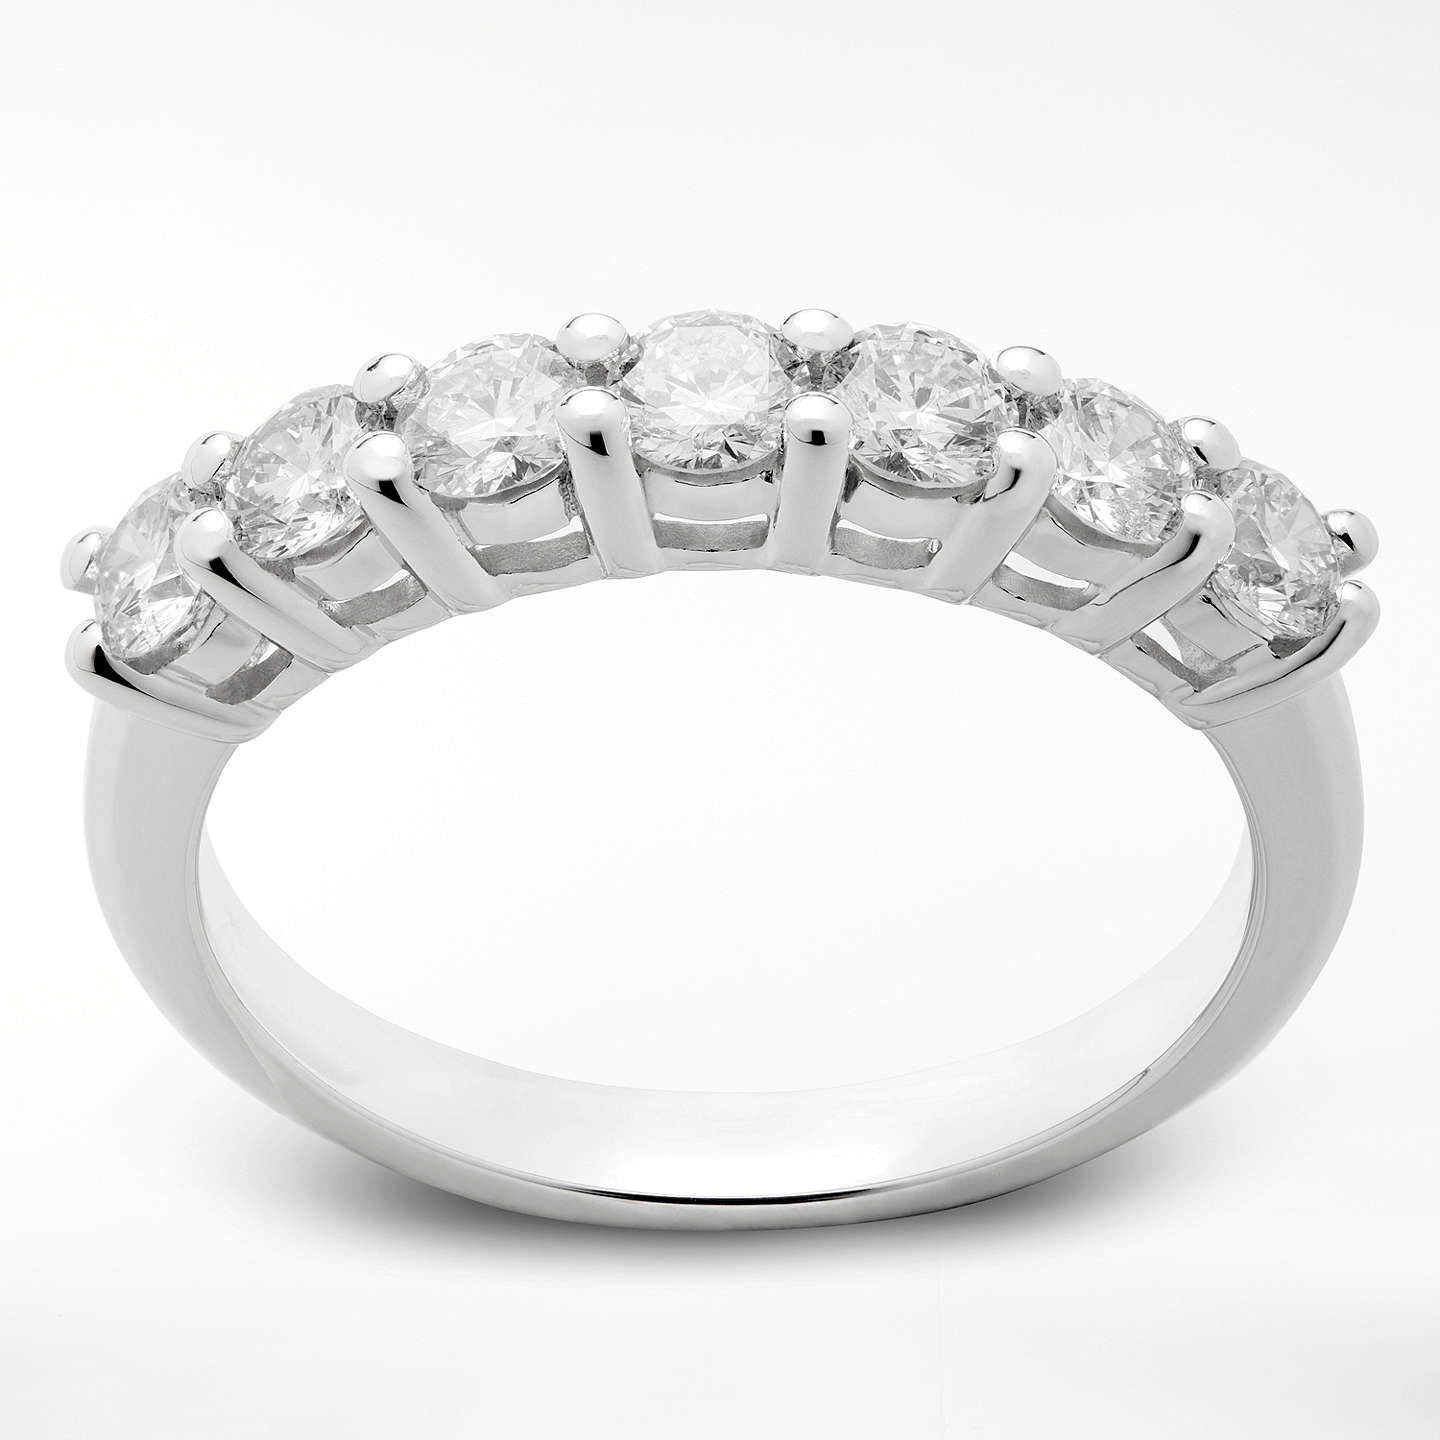 engagement swag sapphire eternity band scale and shop crop the ring product false subsampling diamond circle of bands life upscale